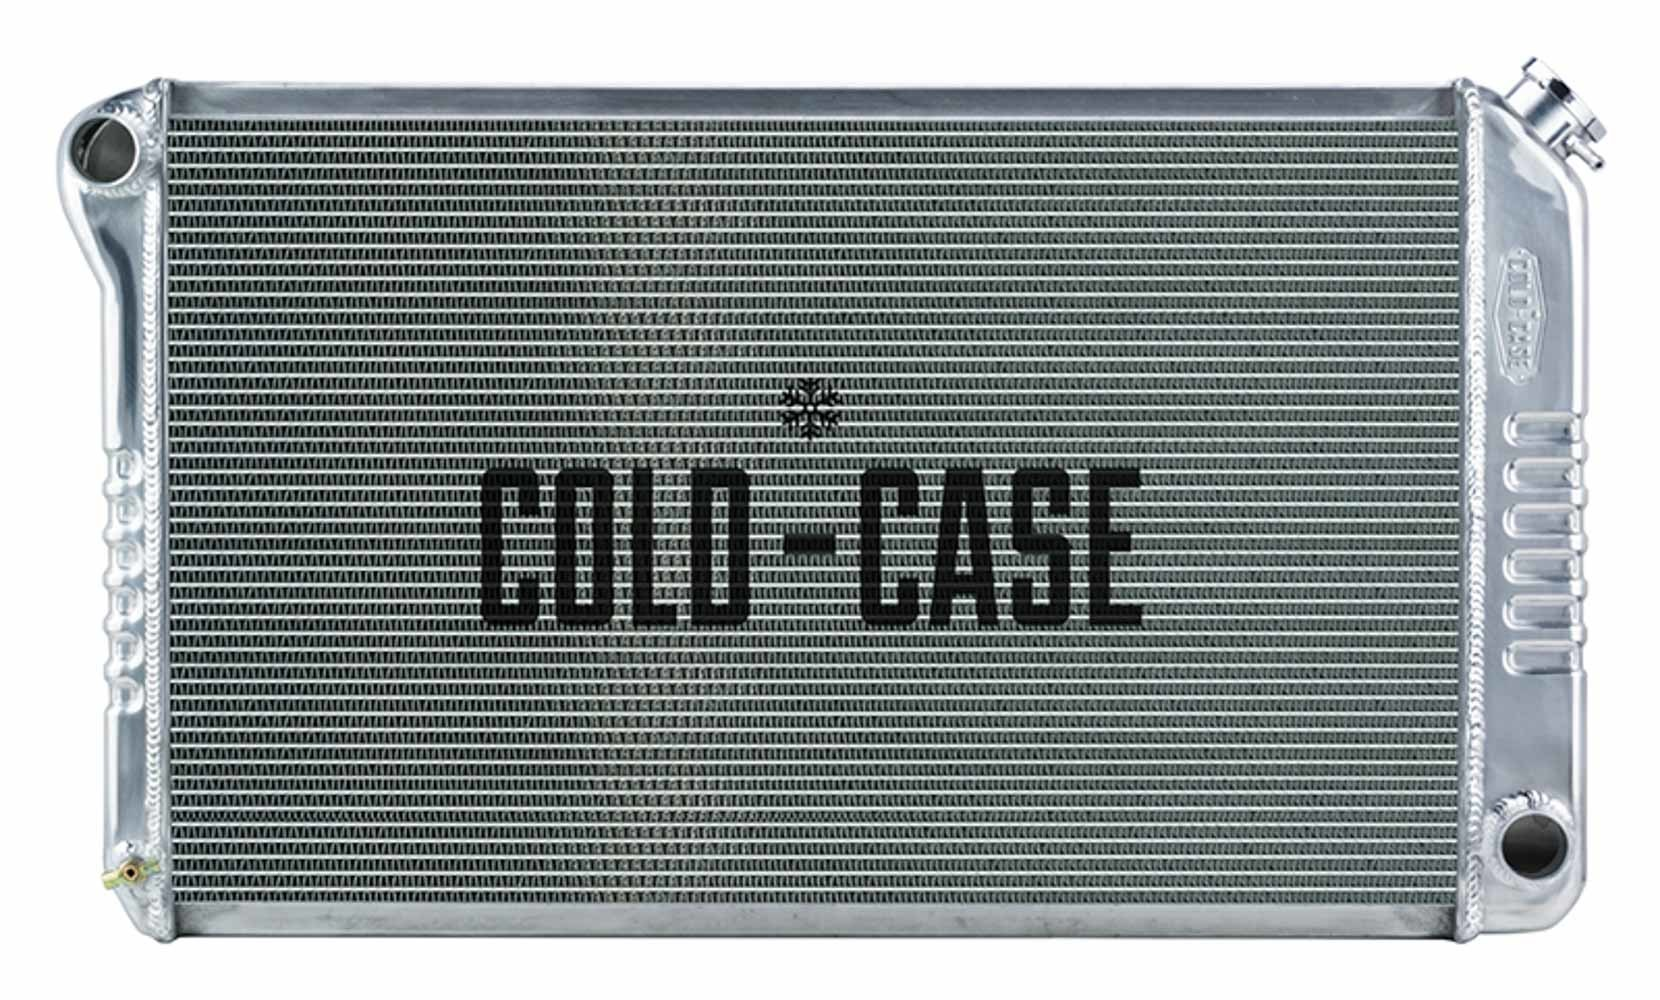 Cold Case Radiators GPF18 Radiator, 33.2 in W, 18.8 in H, 3 in D, Driver Side Inlet, Passenger Side Outlet, Aluminum, Polished, Manual, GM F-Body 1970-81, Each